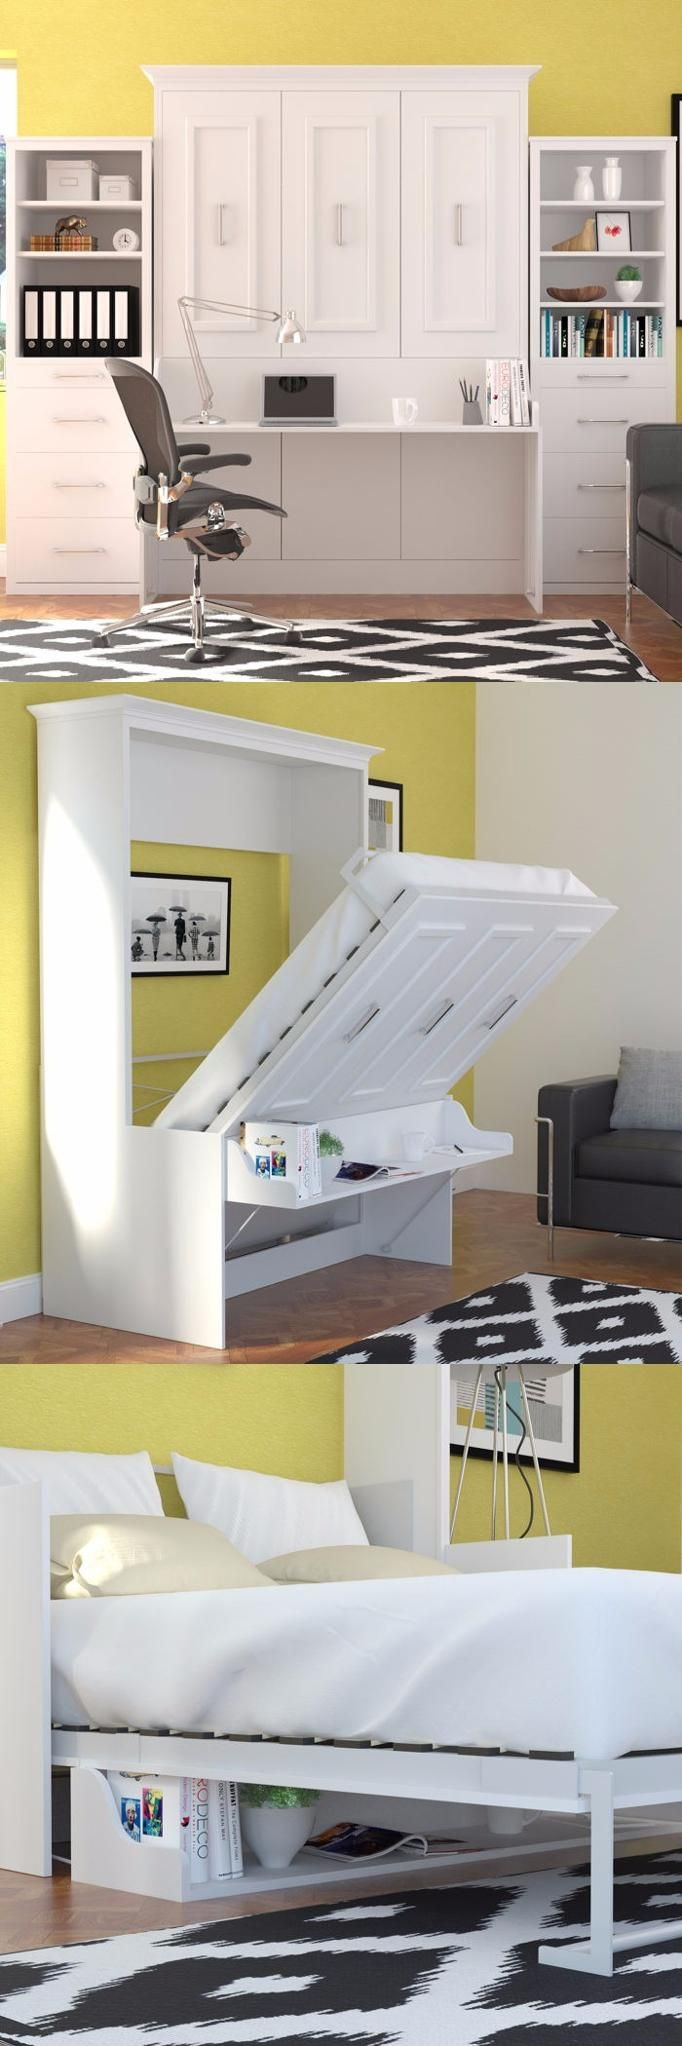 The porter queen wall bed with a desk built in is a truly unique and